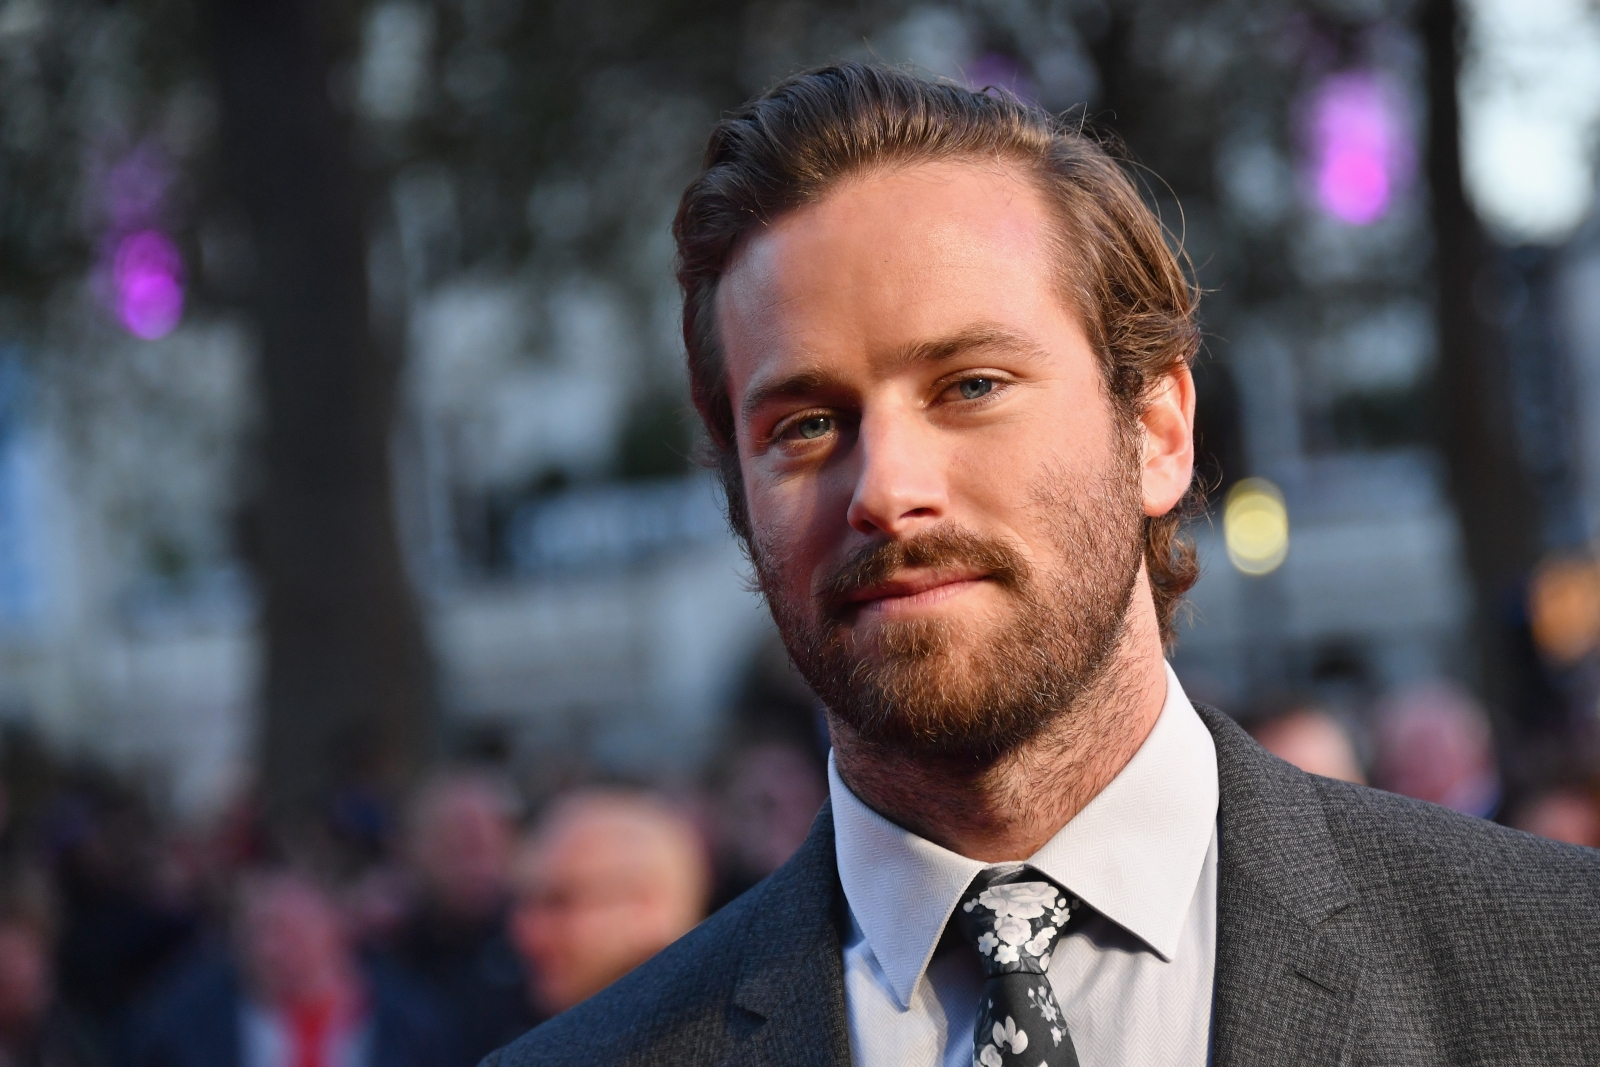 Green Lantern Armie Hammer Teases Twitter Fans Amid